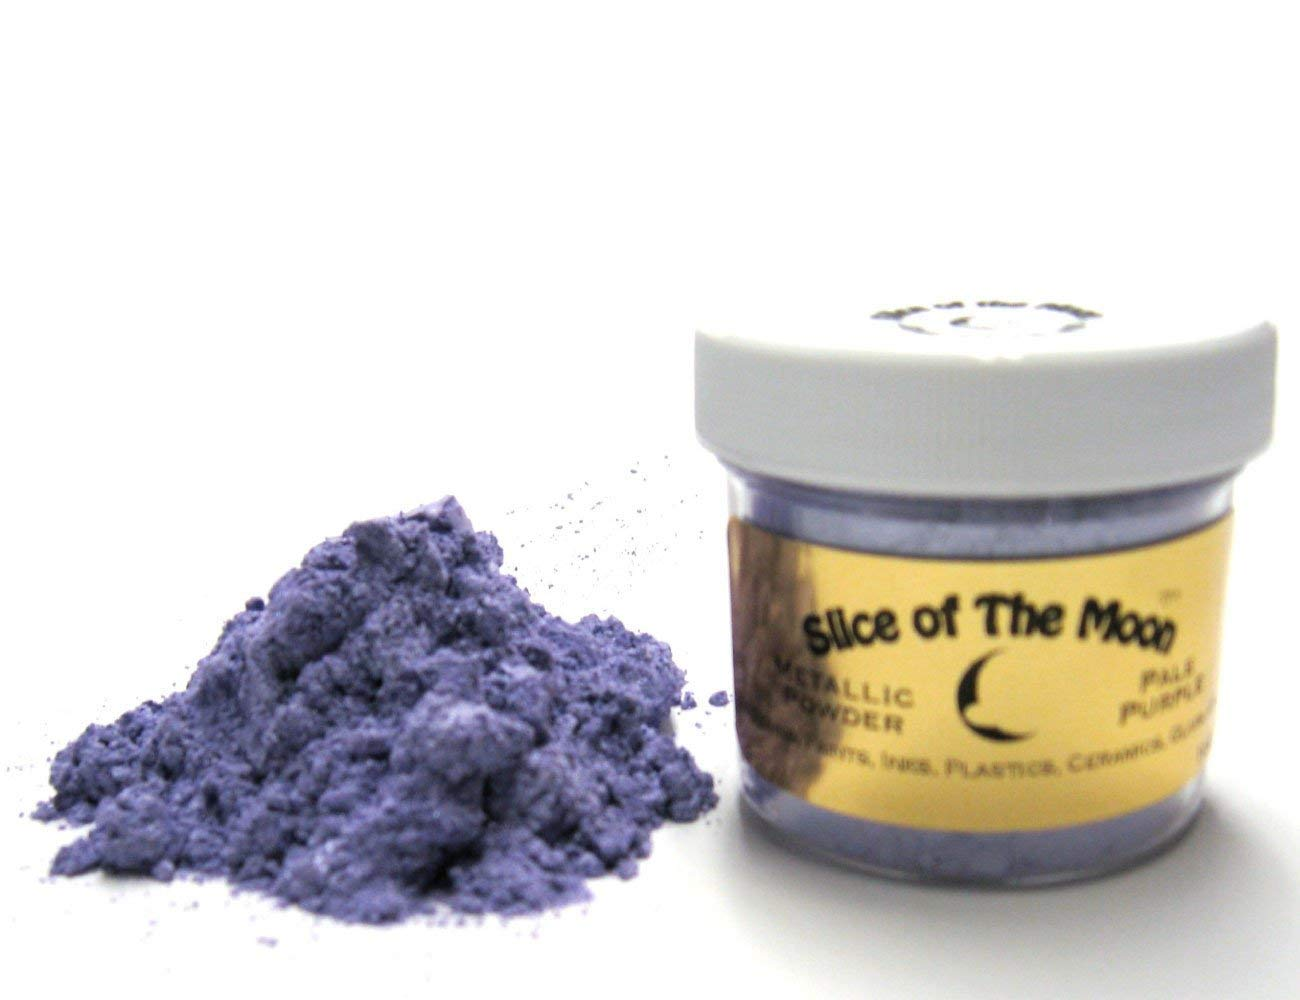 Slice Of The Moon Pale Purple Mica Powder Cosmetic, 28g EKS Entertainment Group